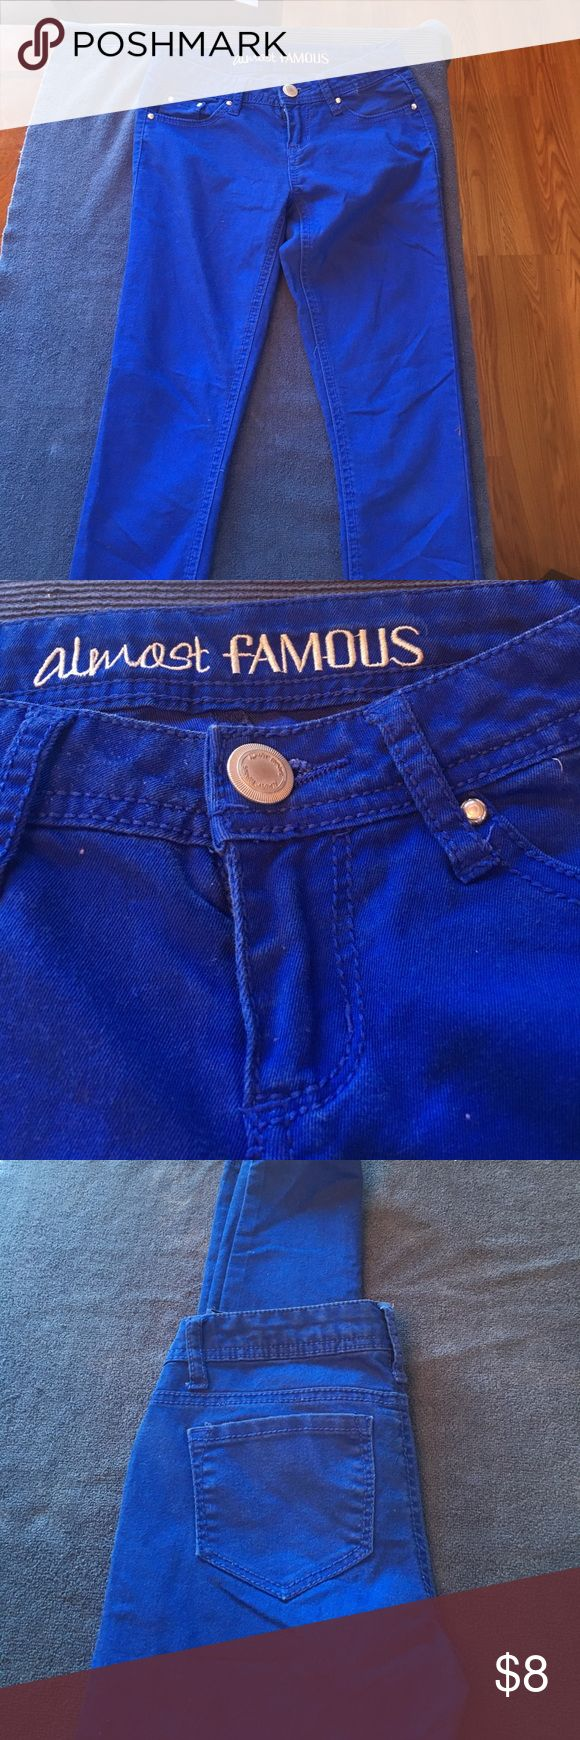 Almost Famous Blue Skinny Pants Almost Famous Blue Skinny Pants Size 1 Condition Used fairly new Almost Famous Jeans Skinny